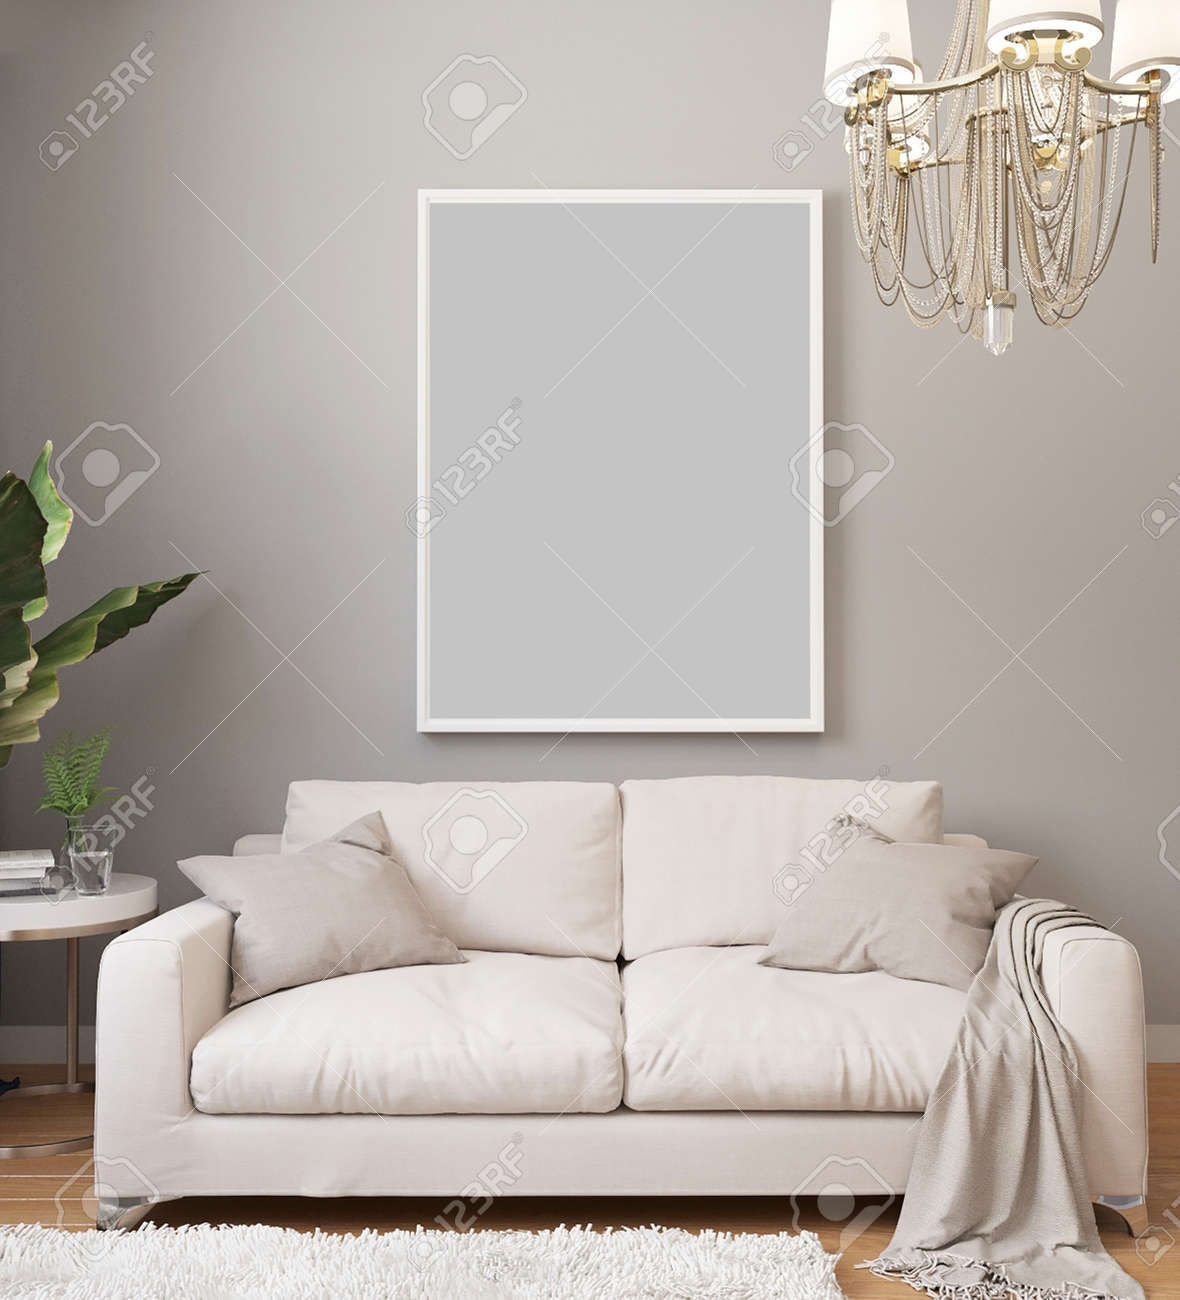 Poster mockup in white frame on light wall in classic luxury interior with chandelier and white sofa, plants. Modern light interior design with blanket picture. 3d rendering. - 155406357